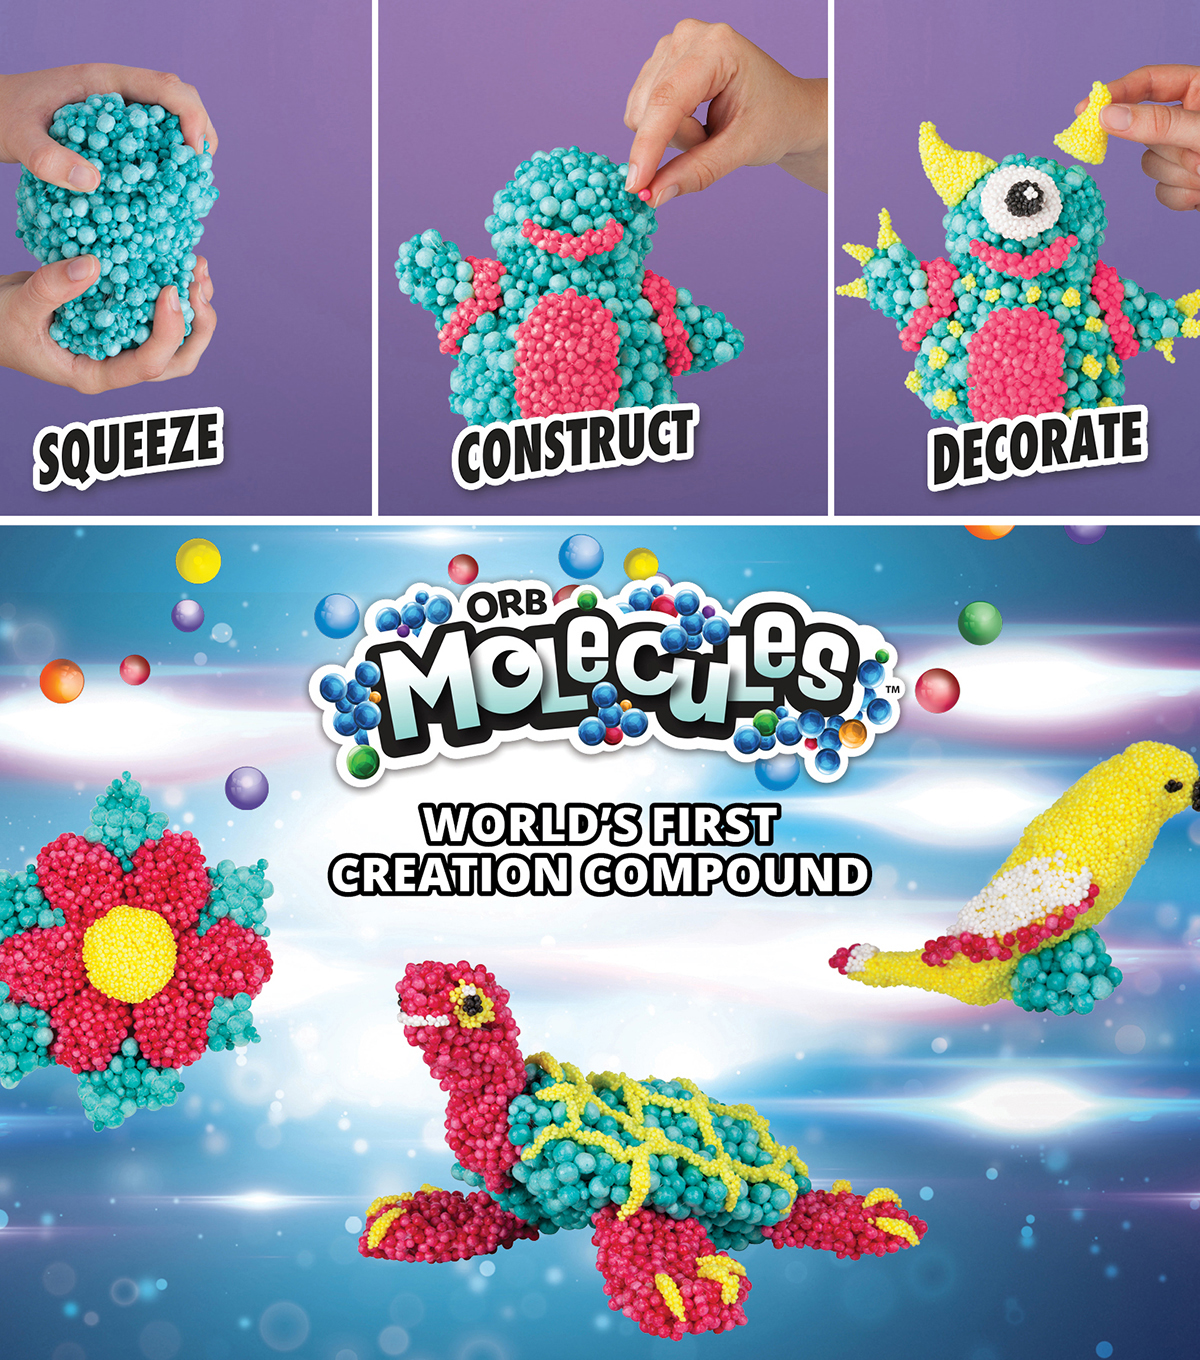 Orbmolecules Merkitty Activity Kit